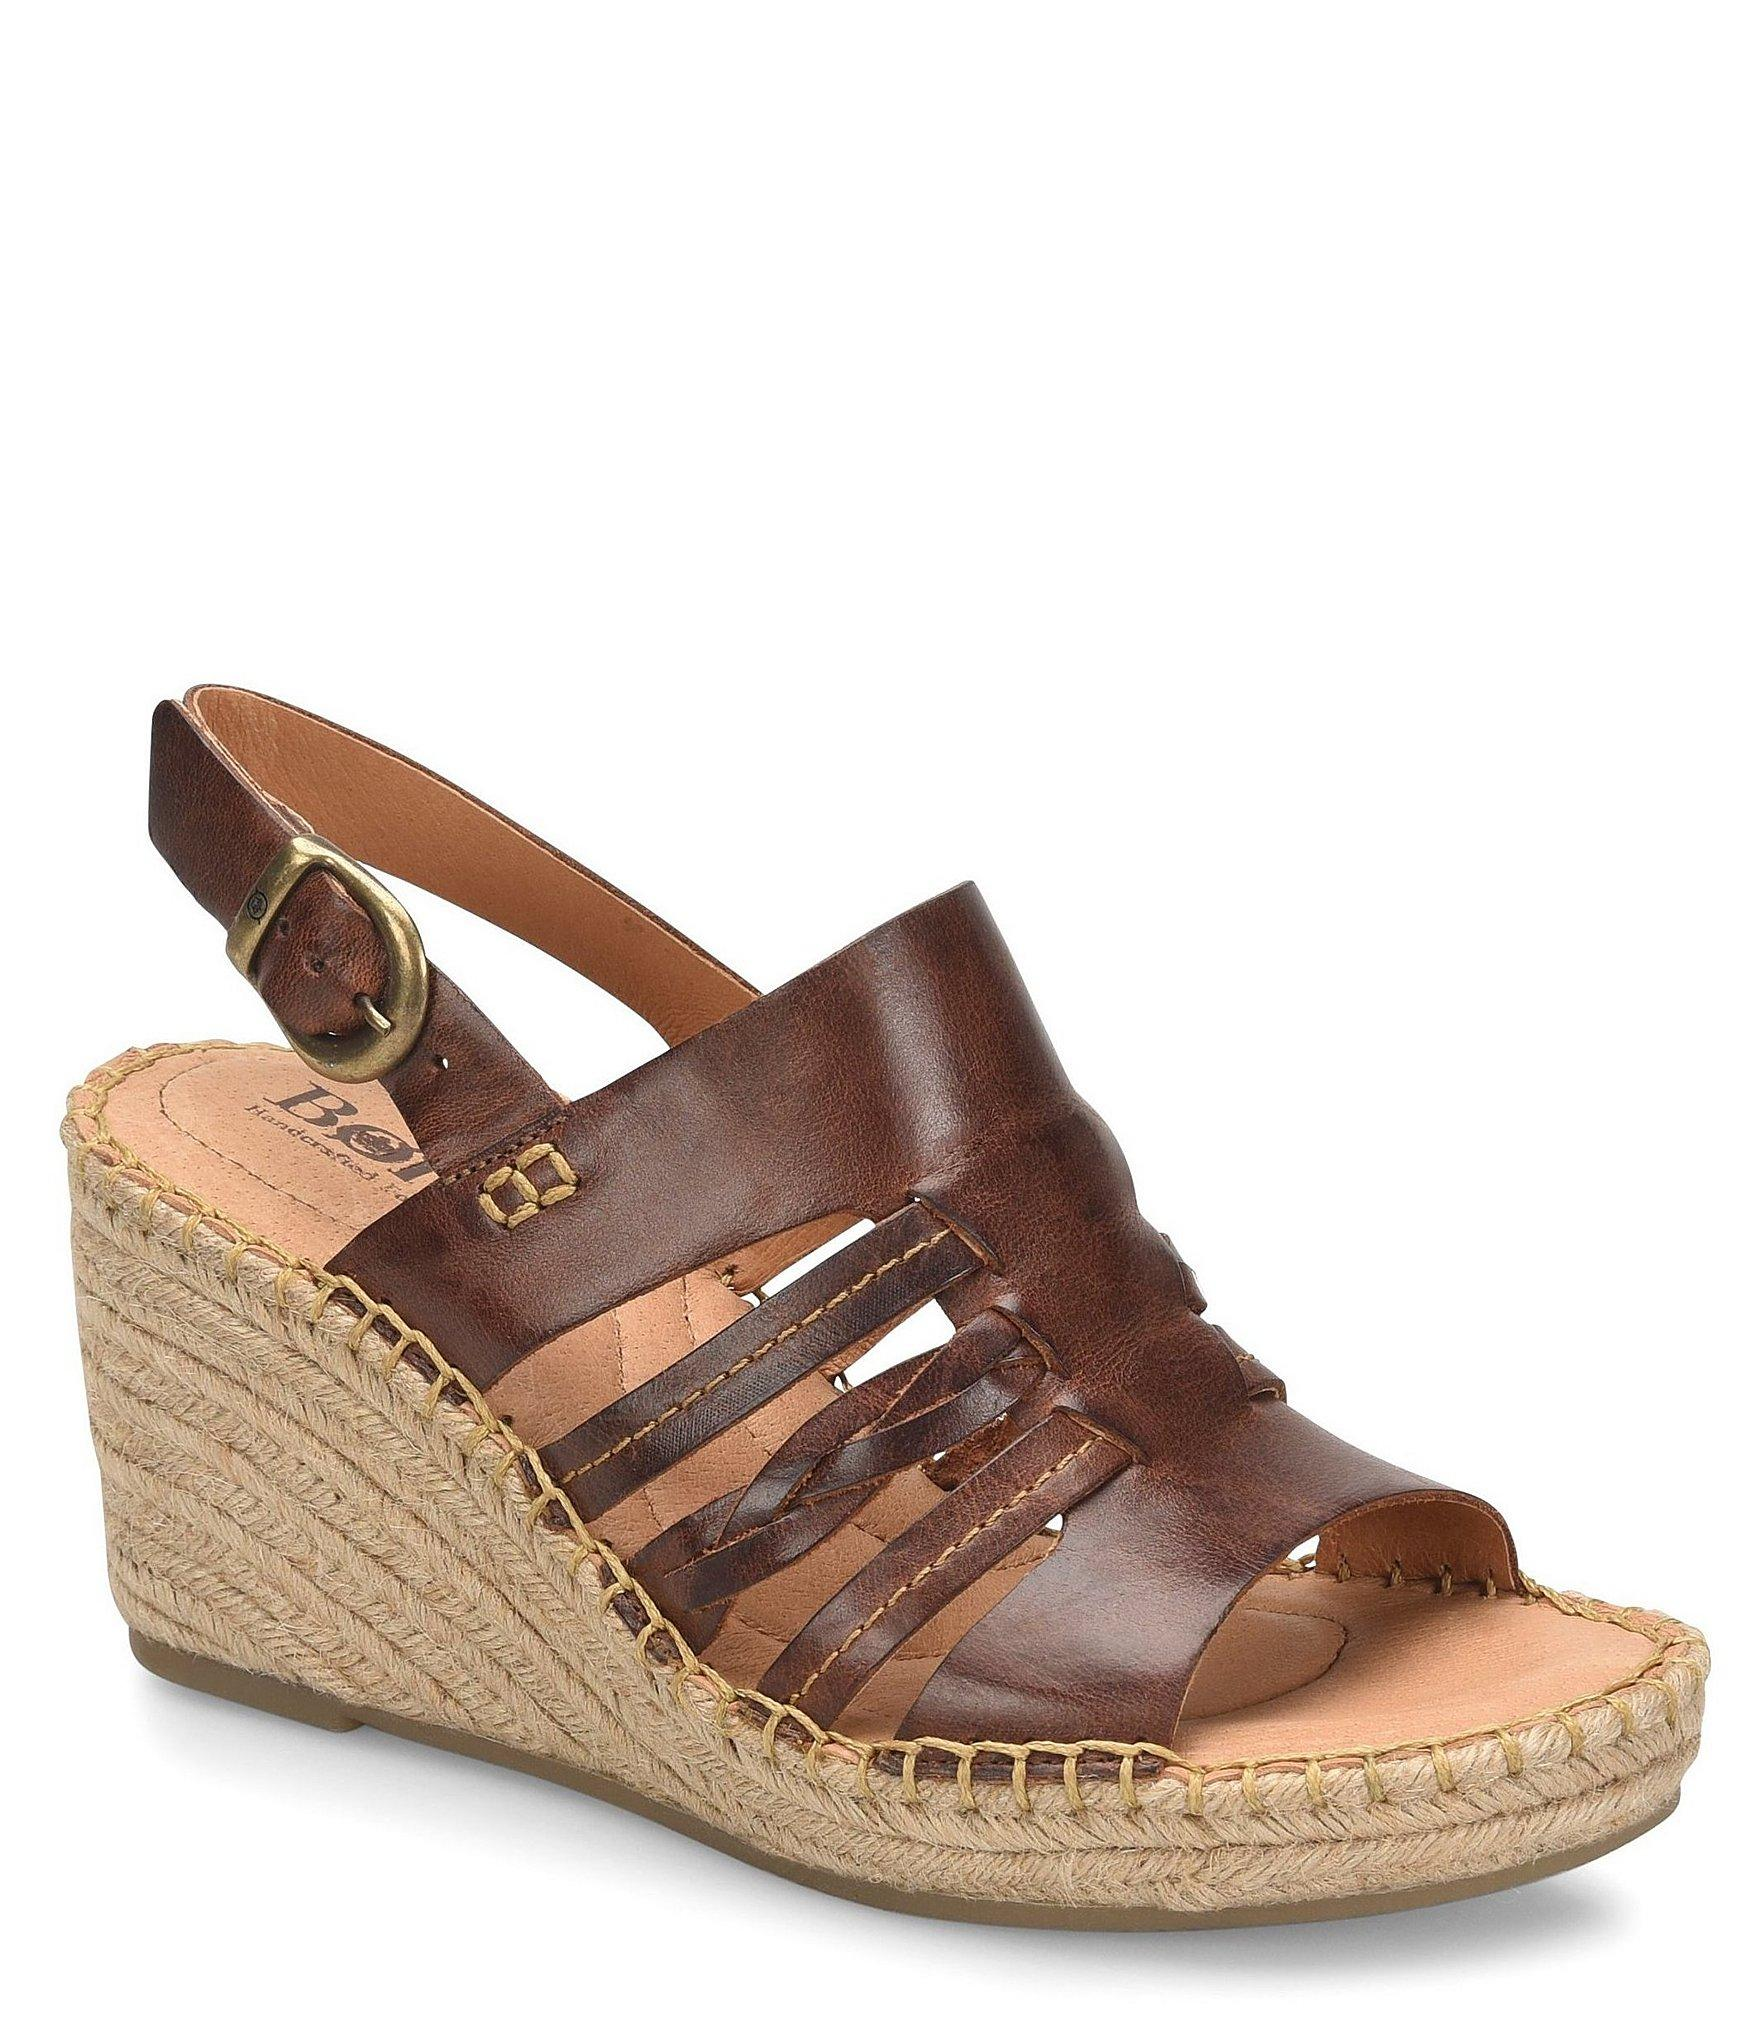 47f3632c2f18 Lyst - Born Payson Leather Espadrille Wrapped Wedge Sandals in Brown